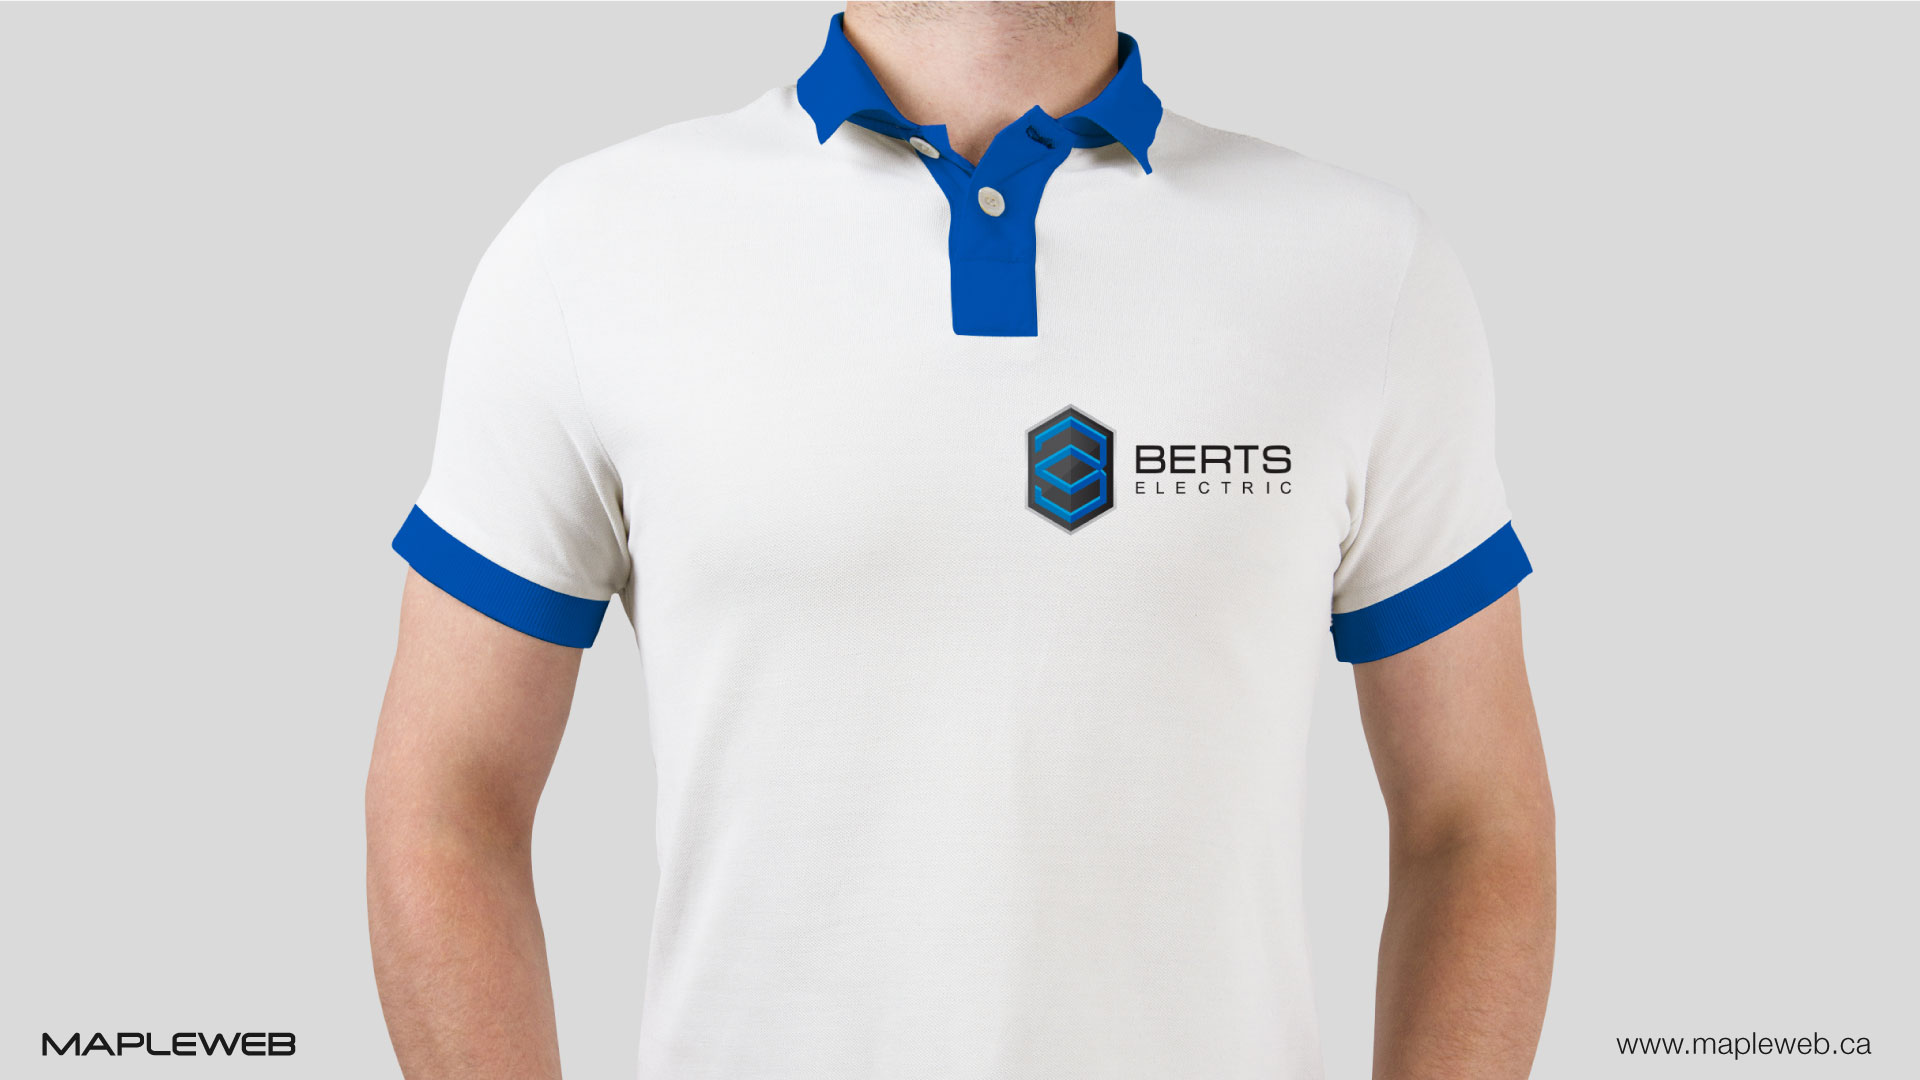 berts-electric-brand-logo-design-by-mapleweb-vancouver-canada-t-shirt-mock